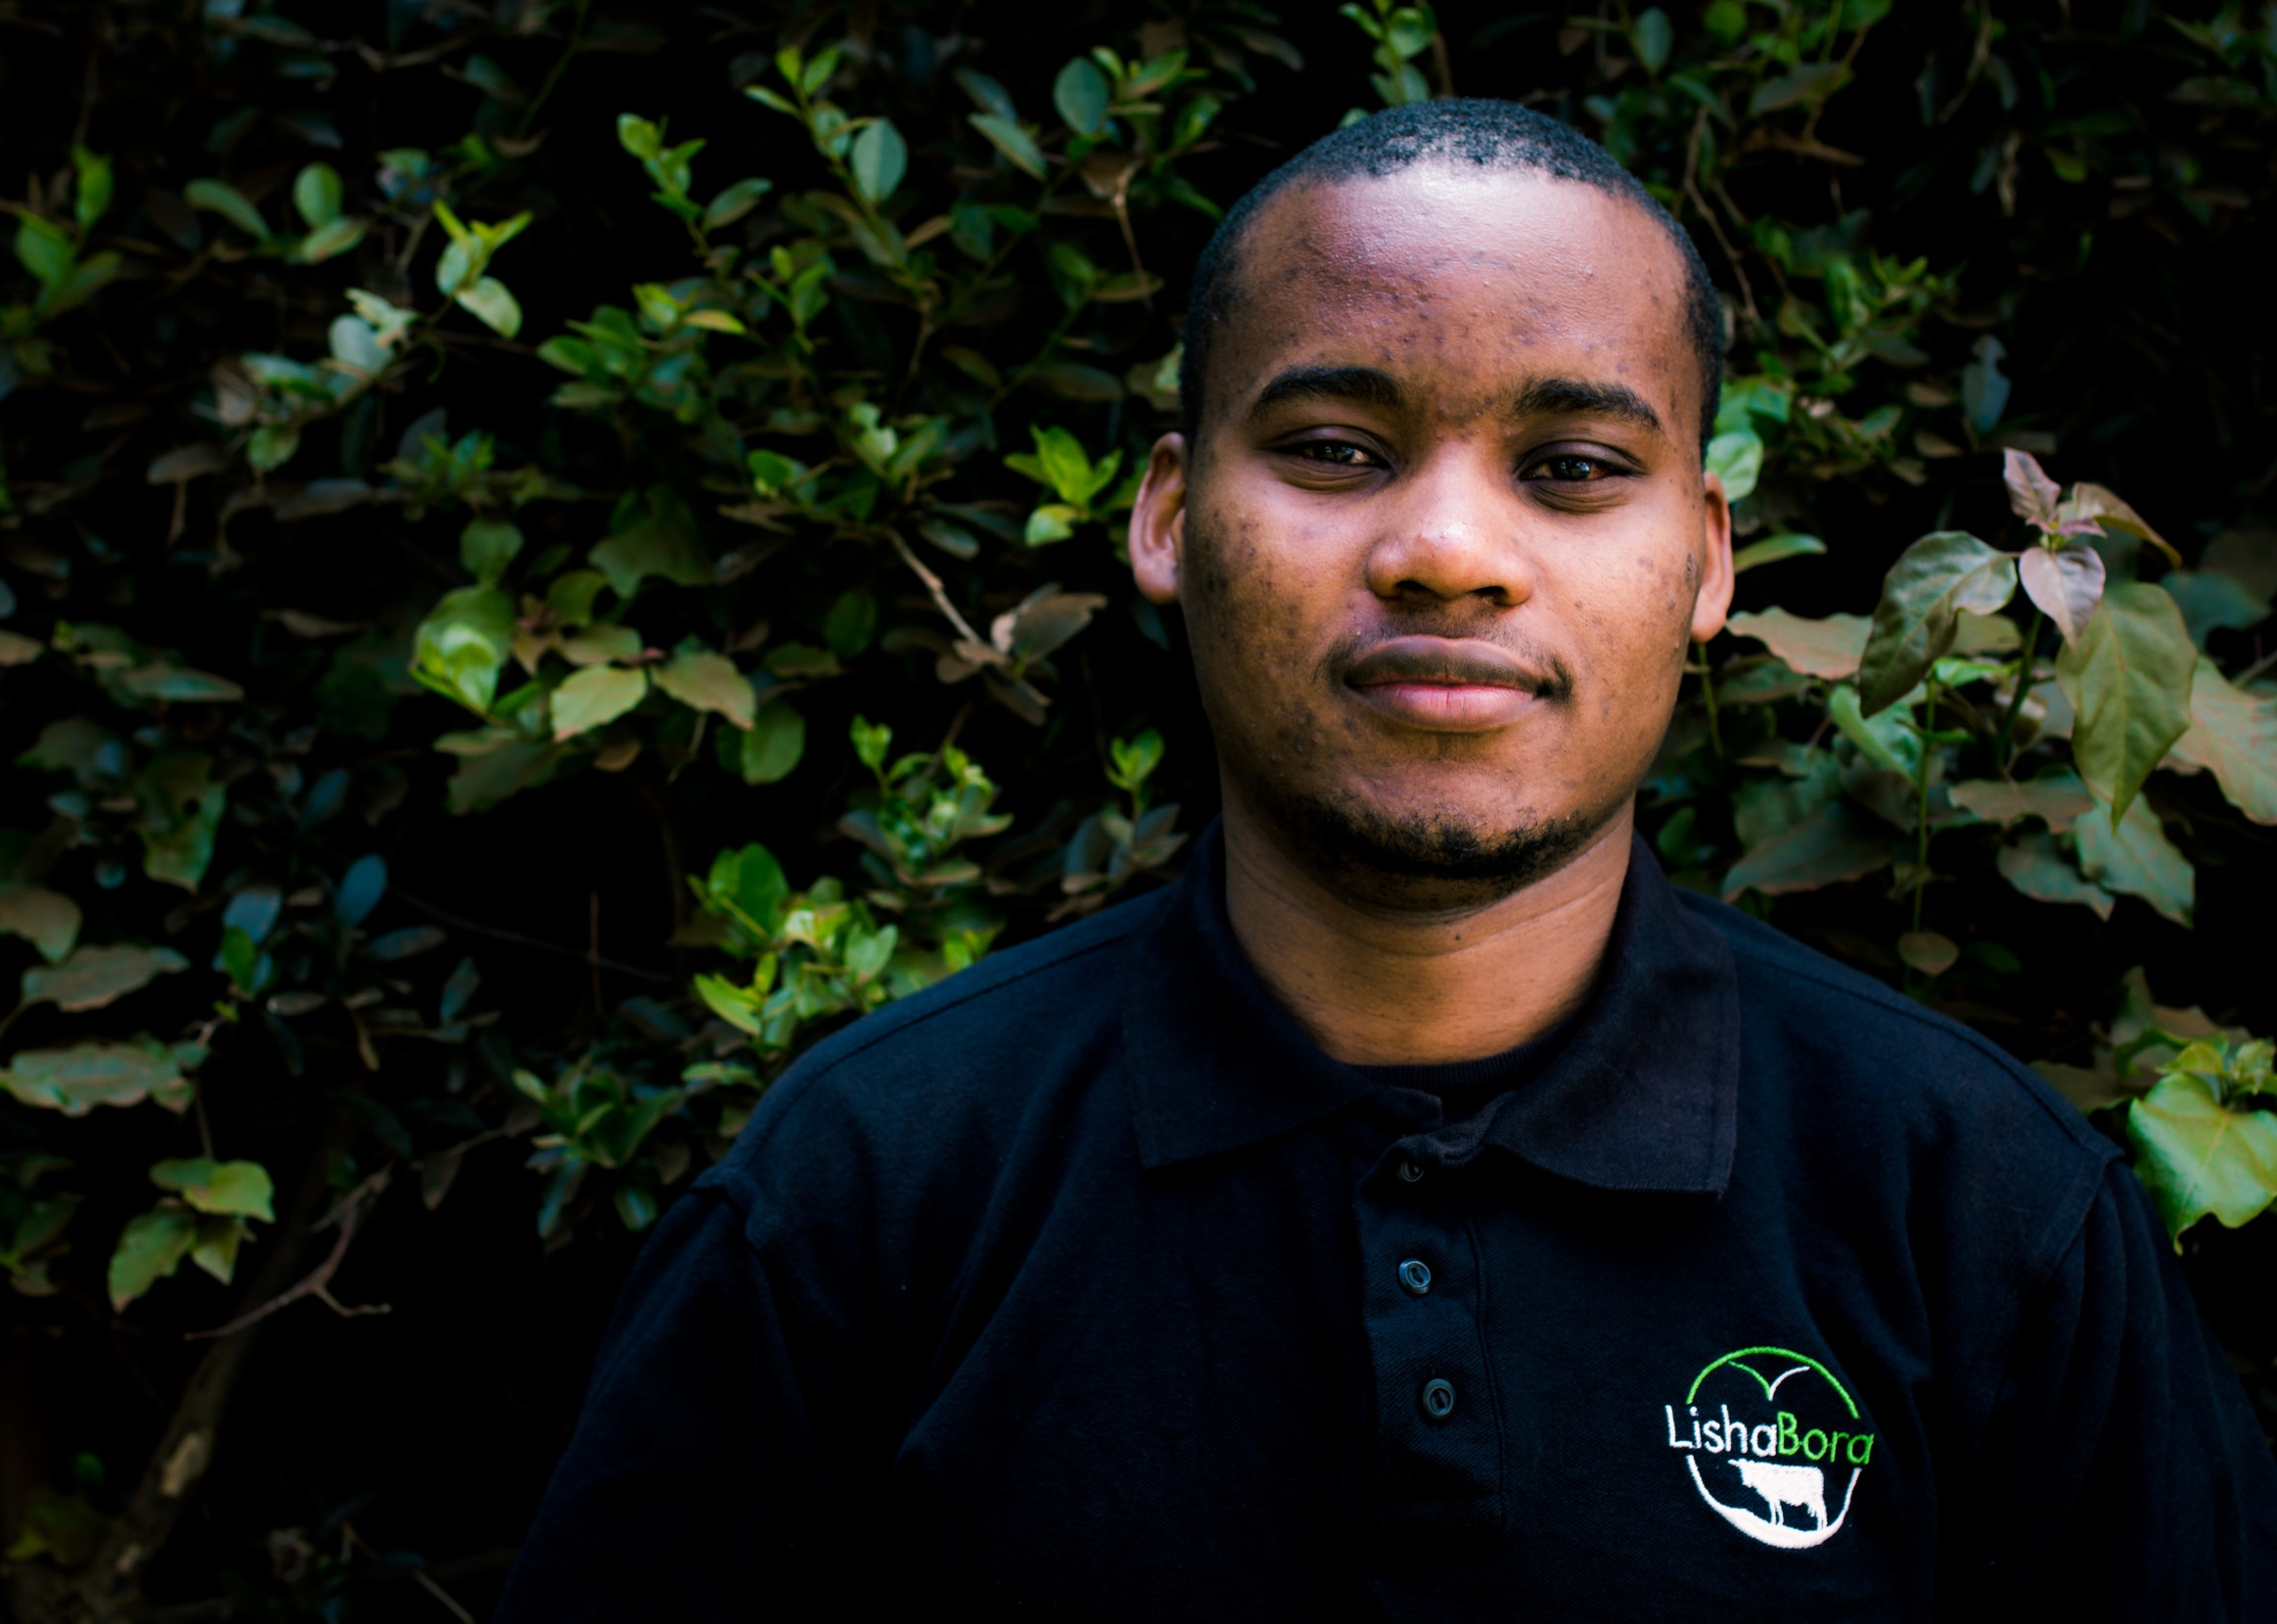 ERIC KOGI   Lead Software Developer (Front End)   Eric is an experienced and dedicated mobile app developer with more than 3 years of expertise in the Software Development industry. He loves developing solutions that create a positive impact in society and that improve peoples' lives through the use of technology. Software development enables Eric to achieve his impactful mission and at the same time have fun doing it. He primarily focuses on mobile solutions at LishaBora and is leading the front end development of V3 of LishaBora's business management mobile application.